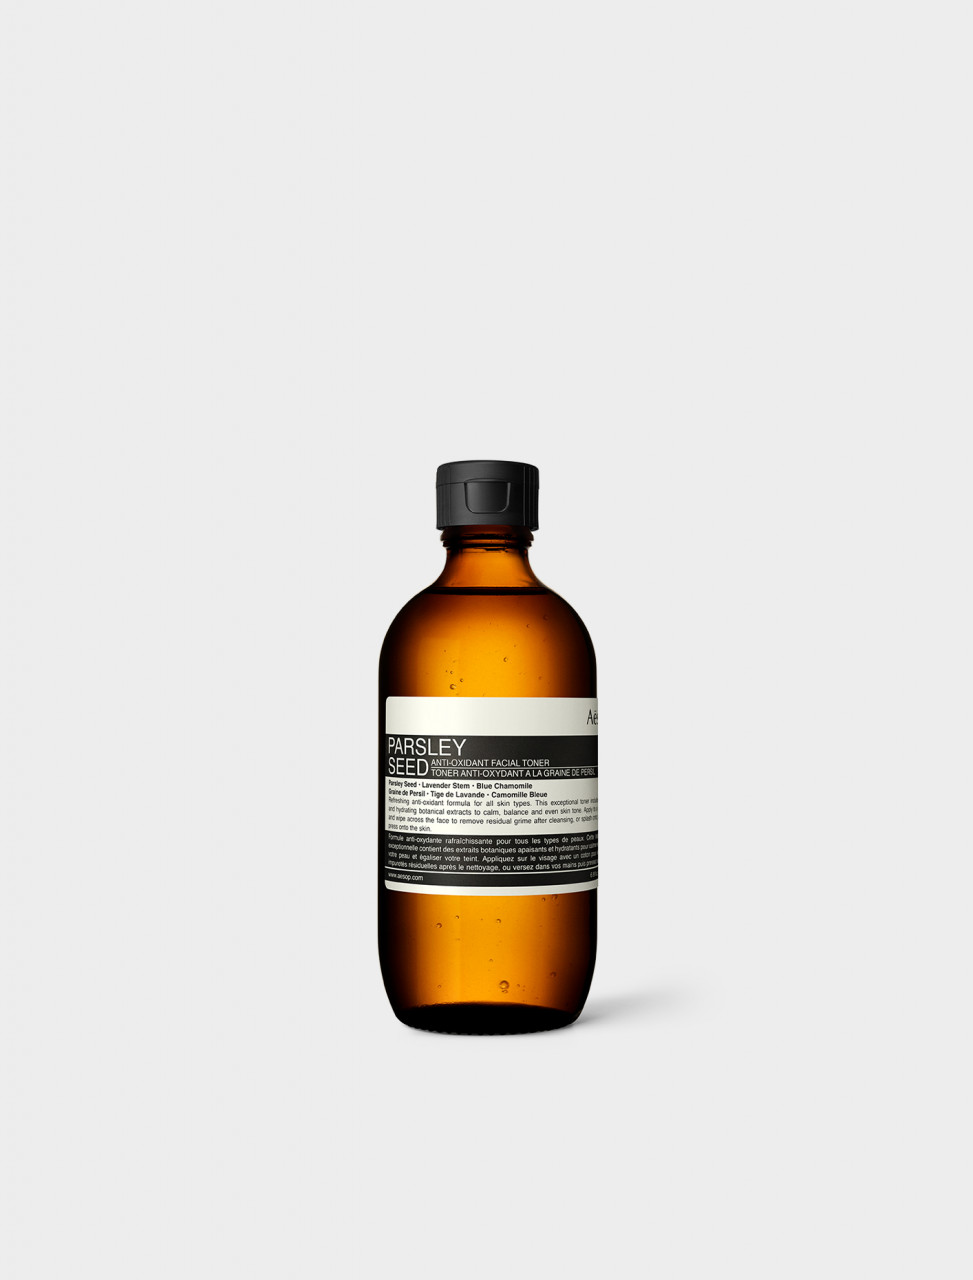 ASK18 Aesop Skin Parsley Seed Anti-Oxidant Facial Toner 200mL